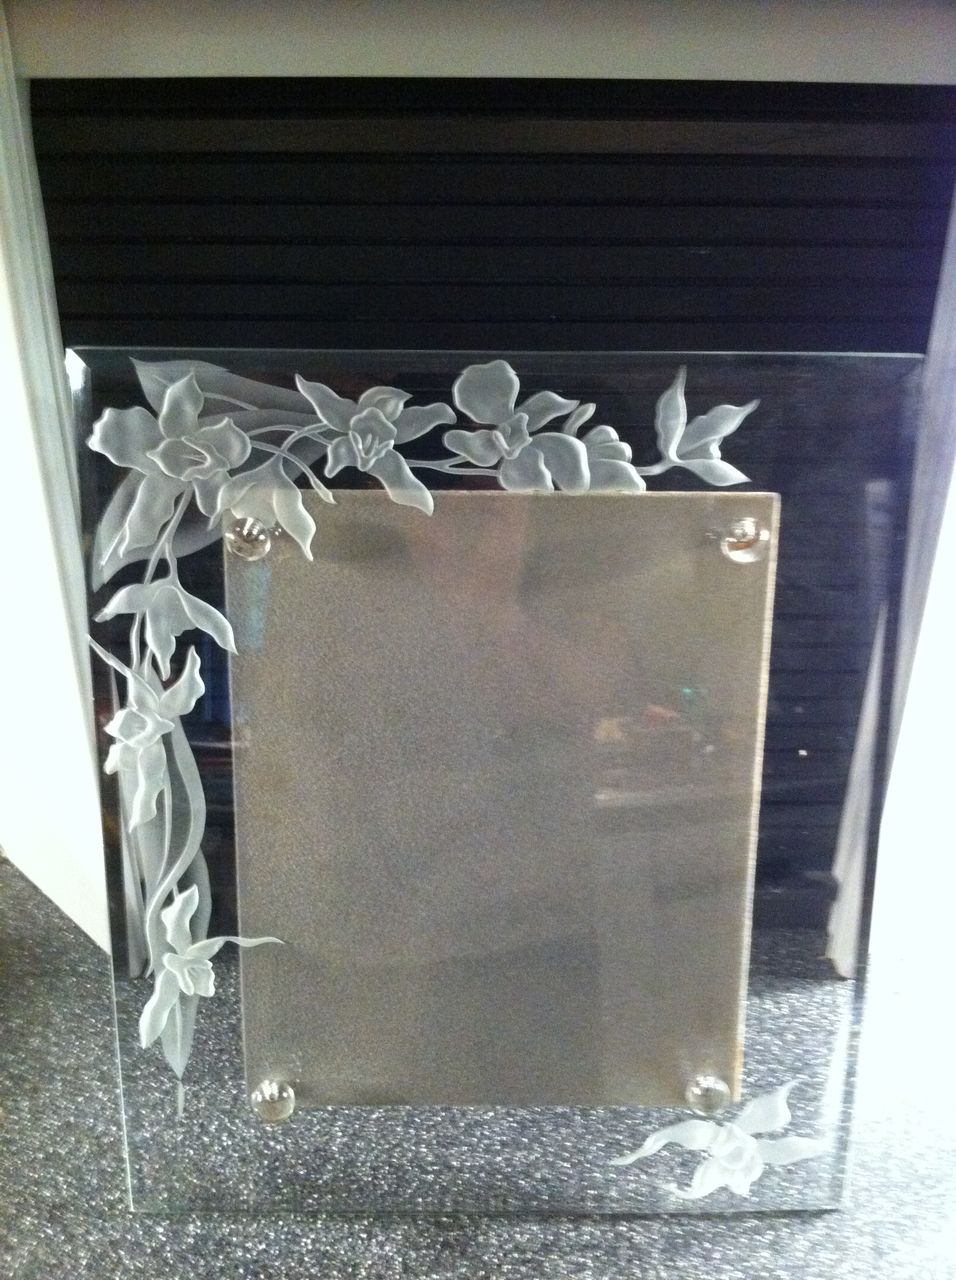 dorothy thorpe etched glass picture frame from eraofmyways